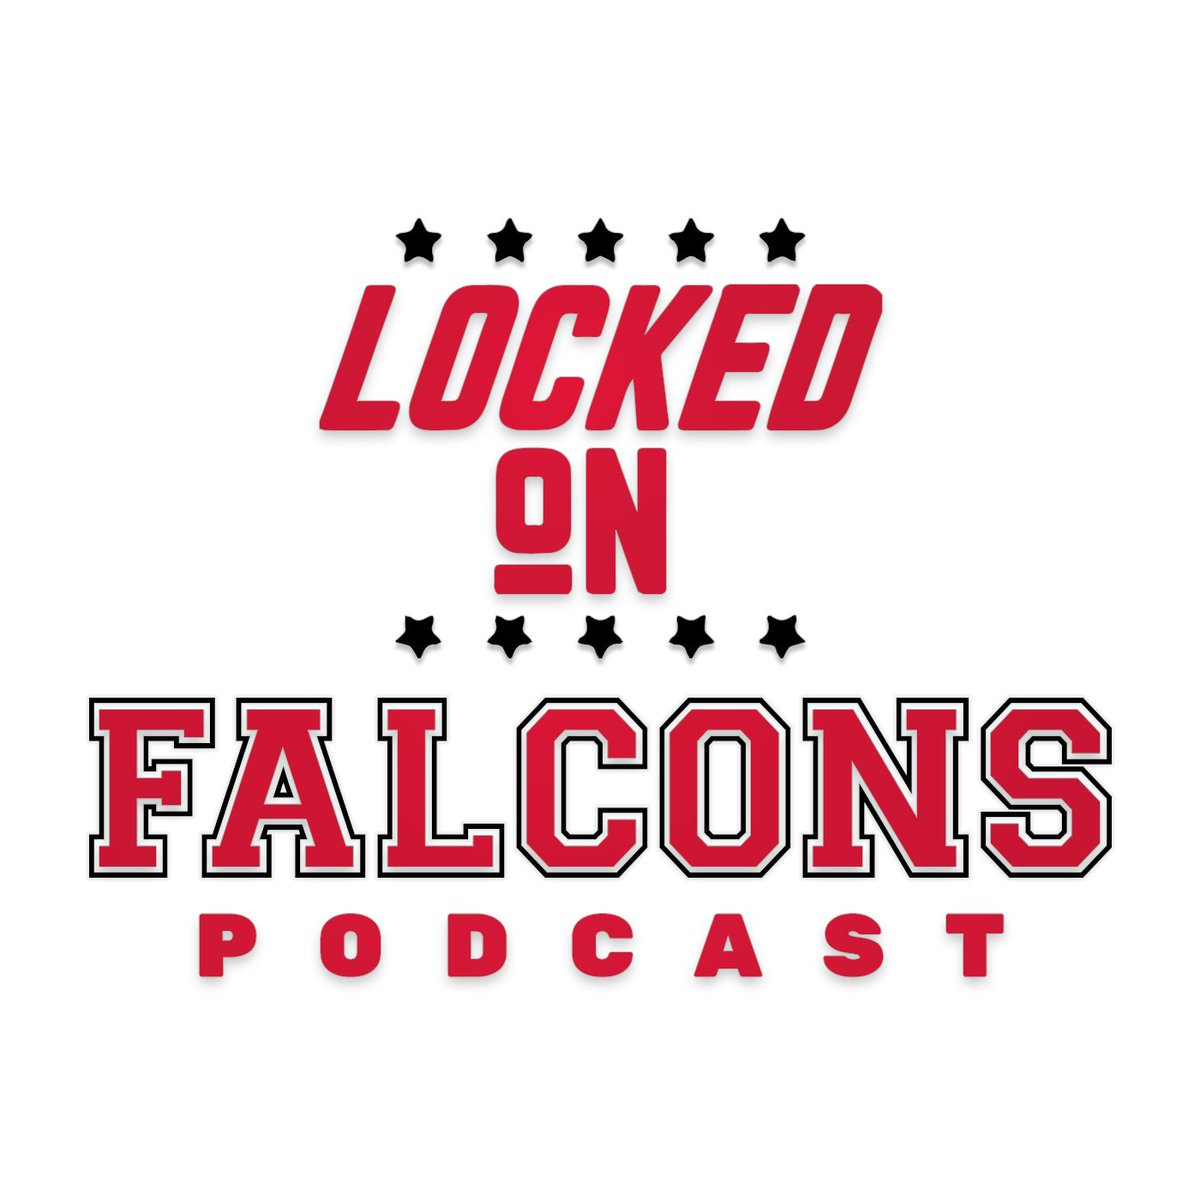 How big a blow did the #Falcons offense suffer with the injury to Julio Jones in Sunday's loss to the #Saints  @falcfans is joined by @Allen_Strk to break that down on today's podcast #ATLvsNO